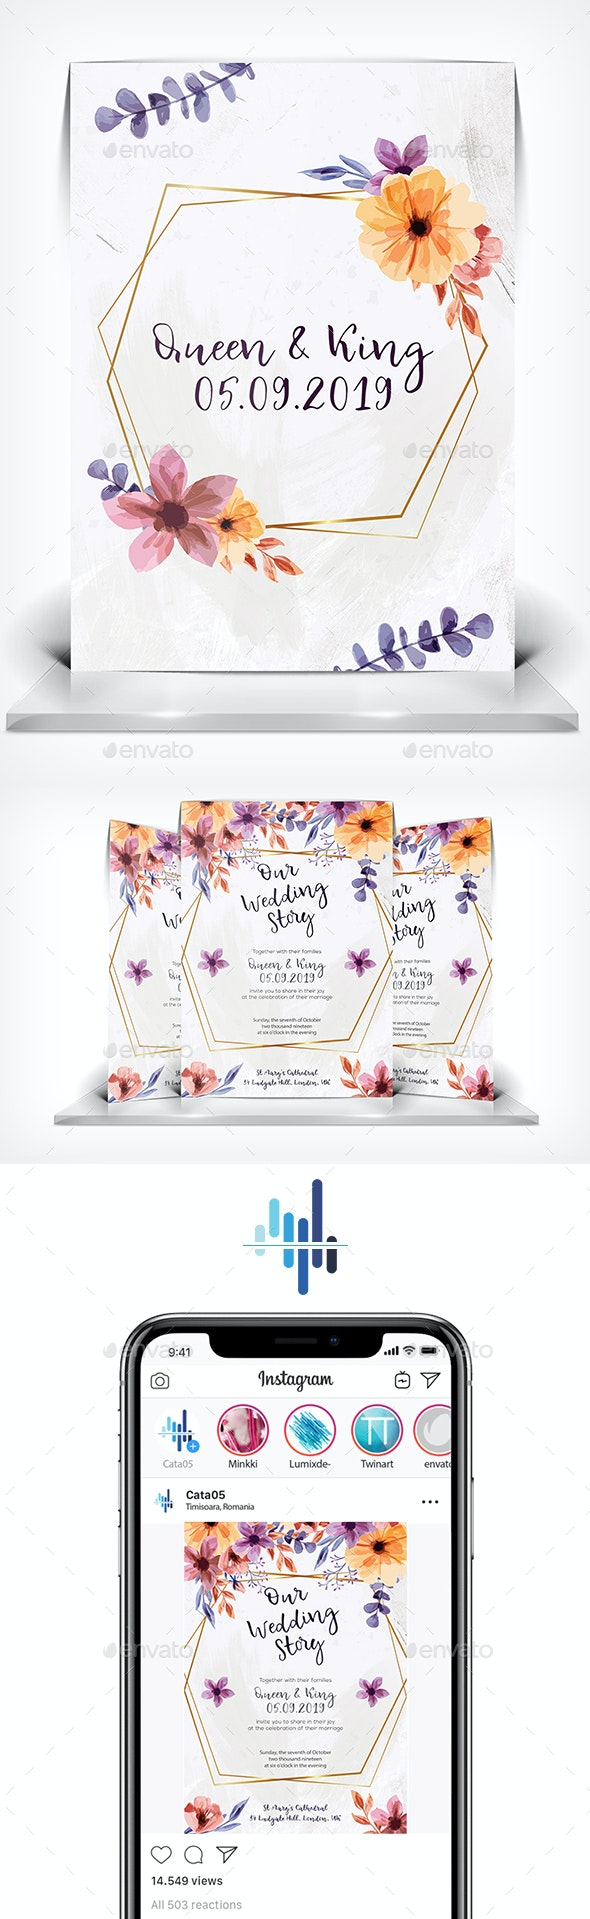 Our Wedding Story - Wedding Greeting Cards